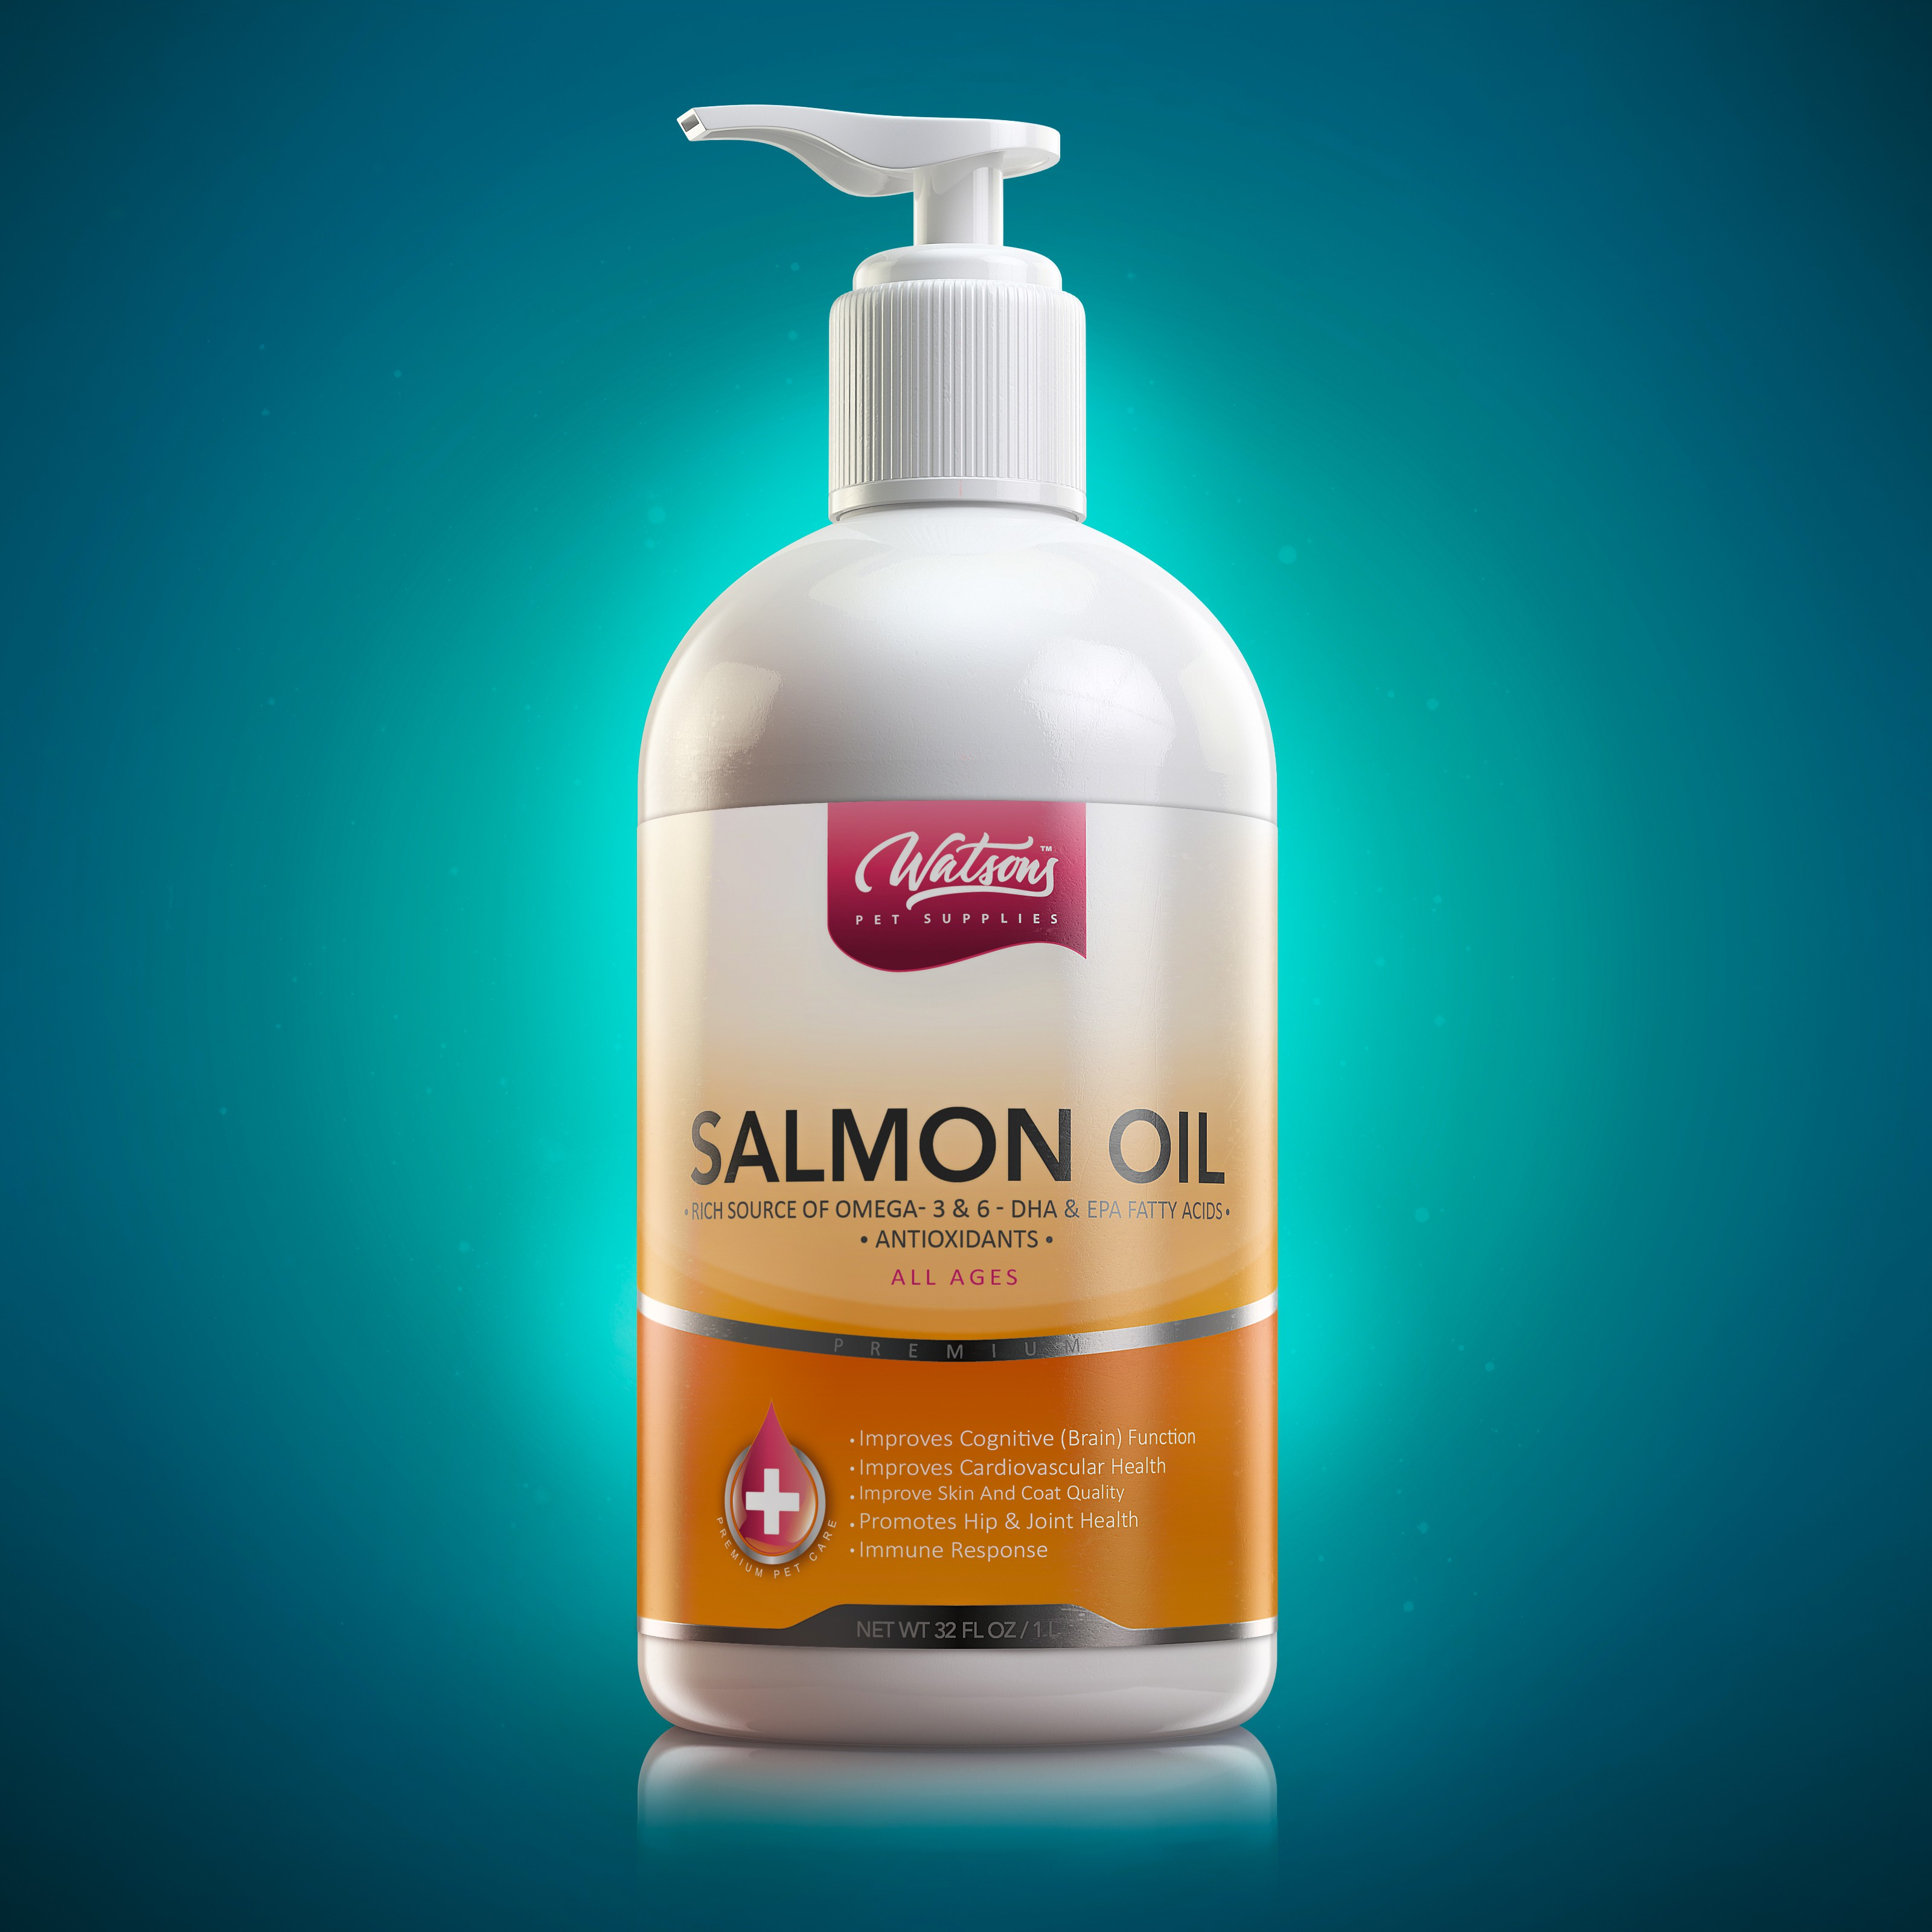 Salmon Oil Label Design and 3D Rendering